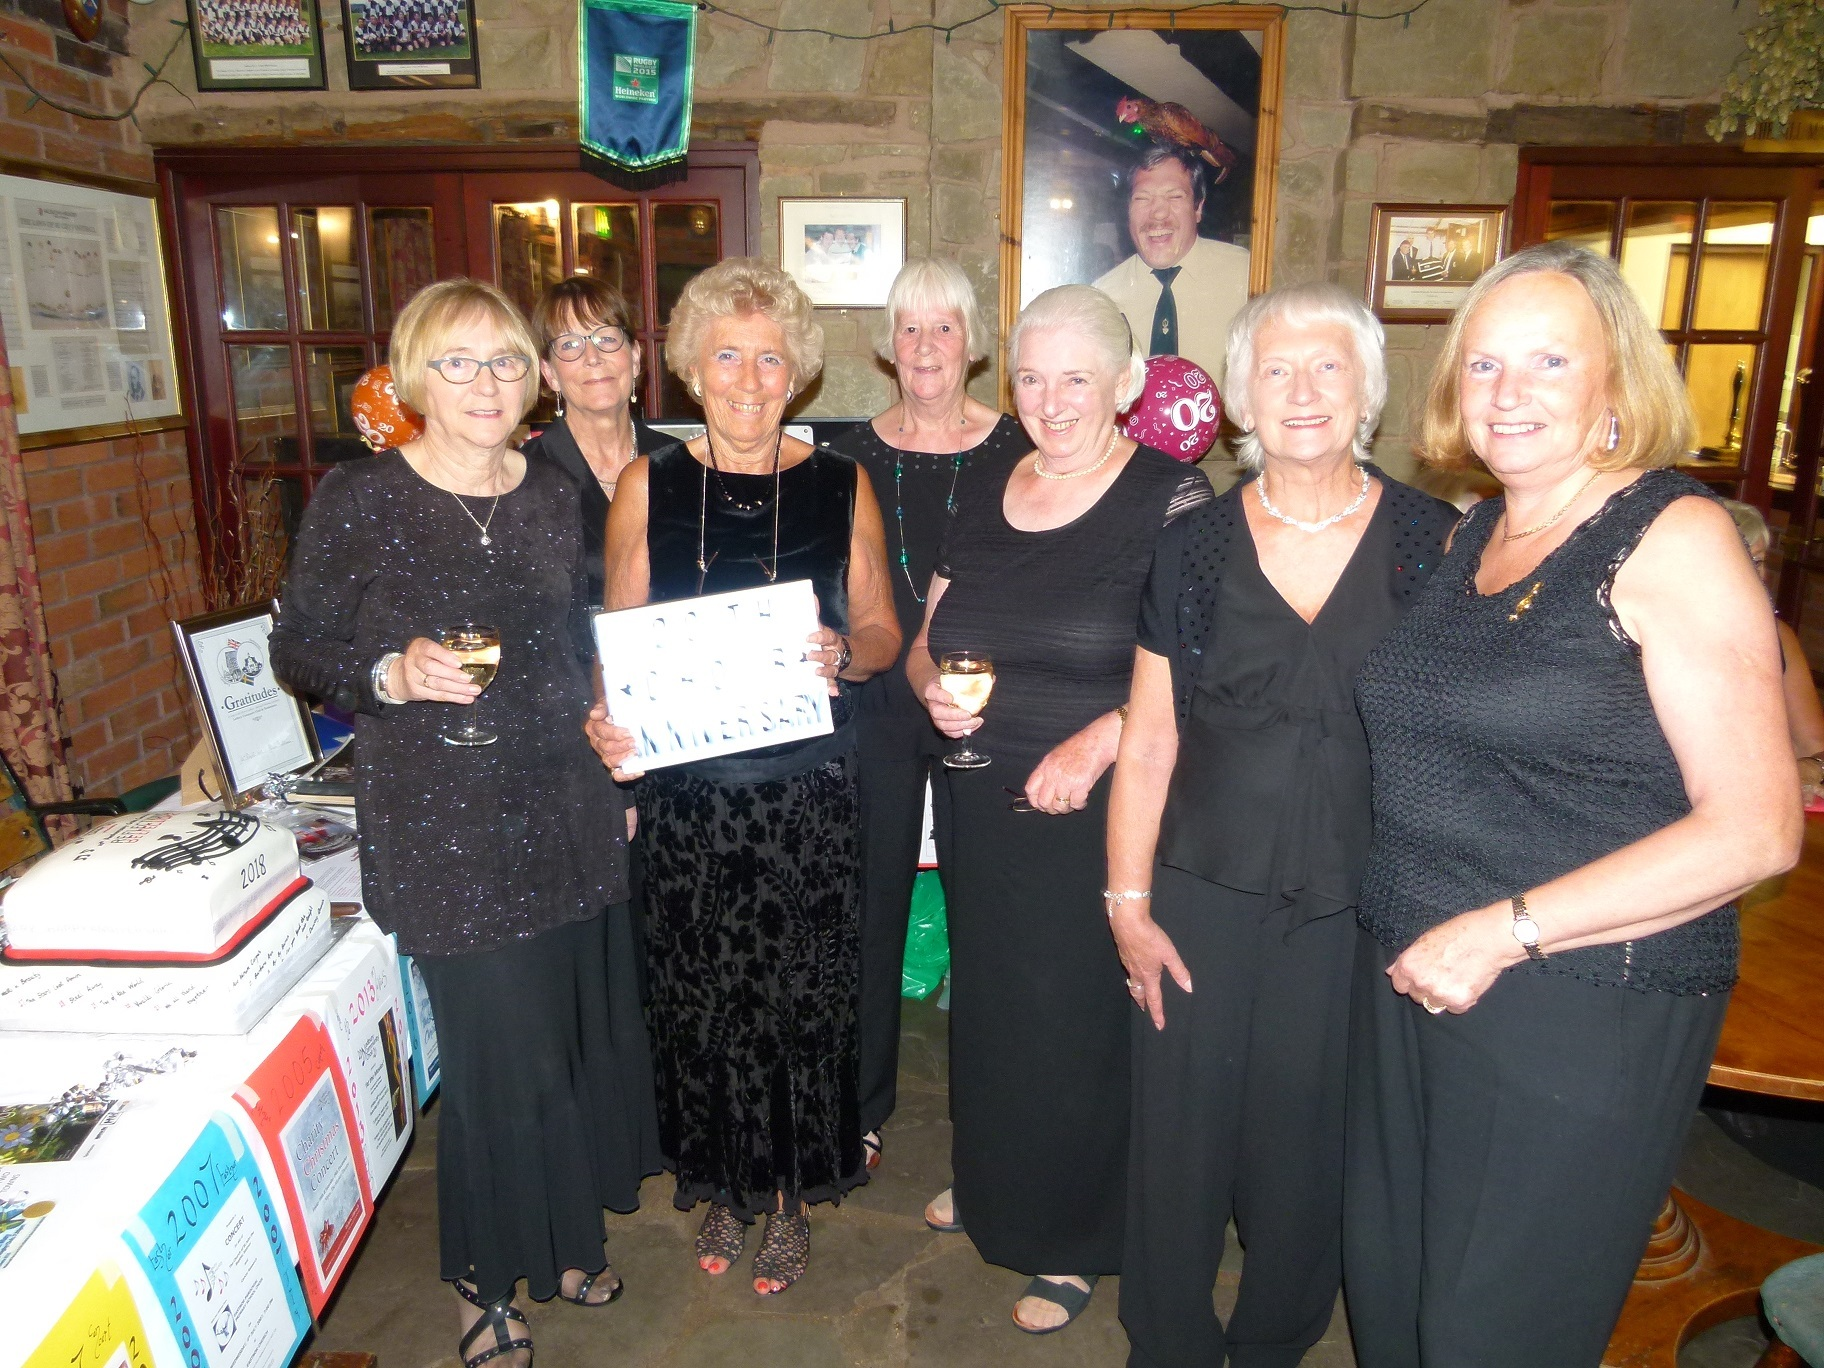 CELEBRATNG: Members of Ledbury Community Choir at the 20th anniversary concert. Pic by Andy Ward